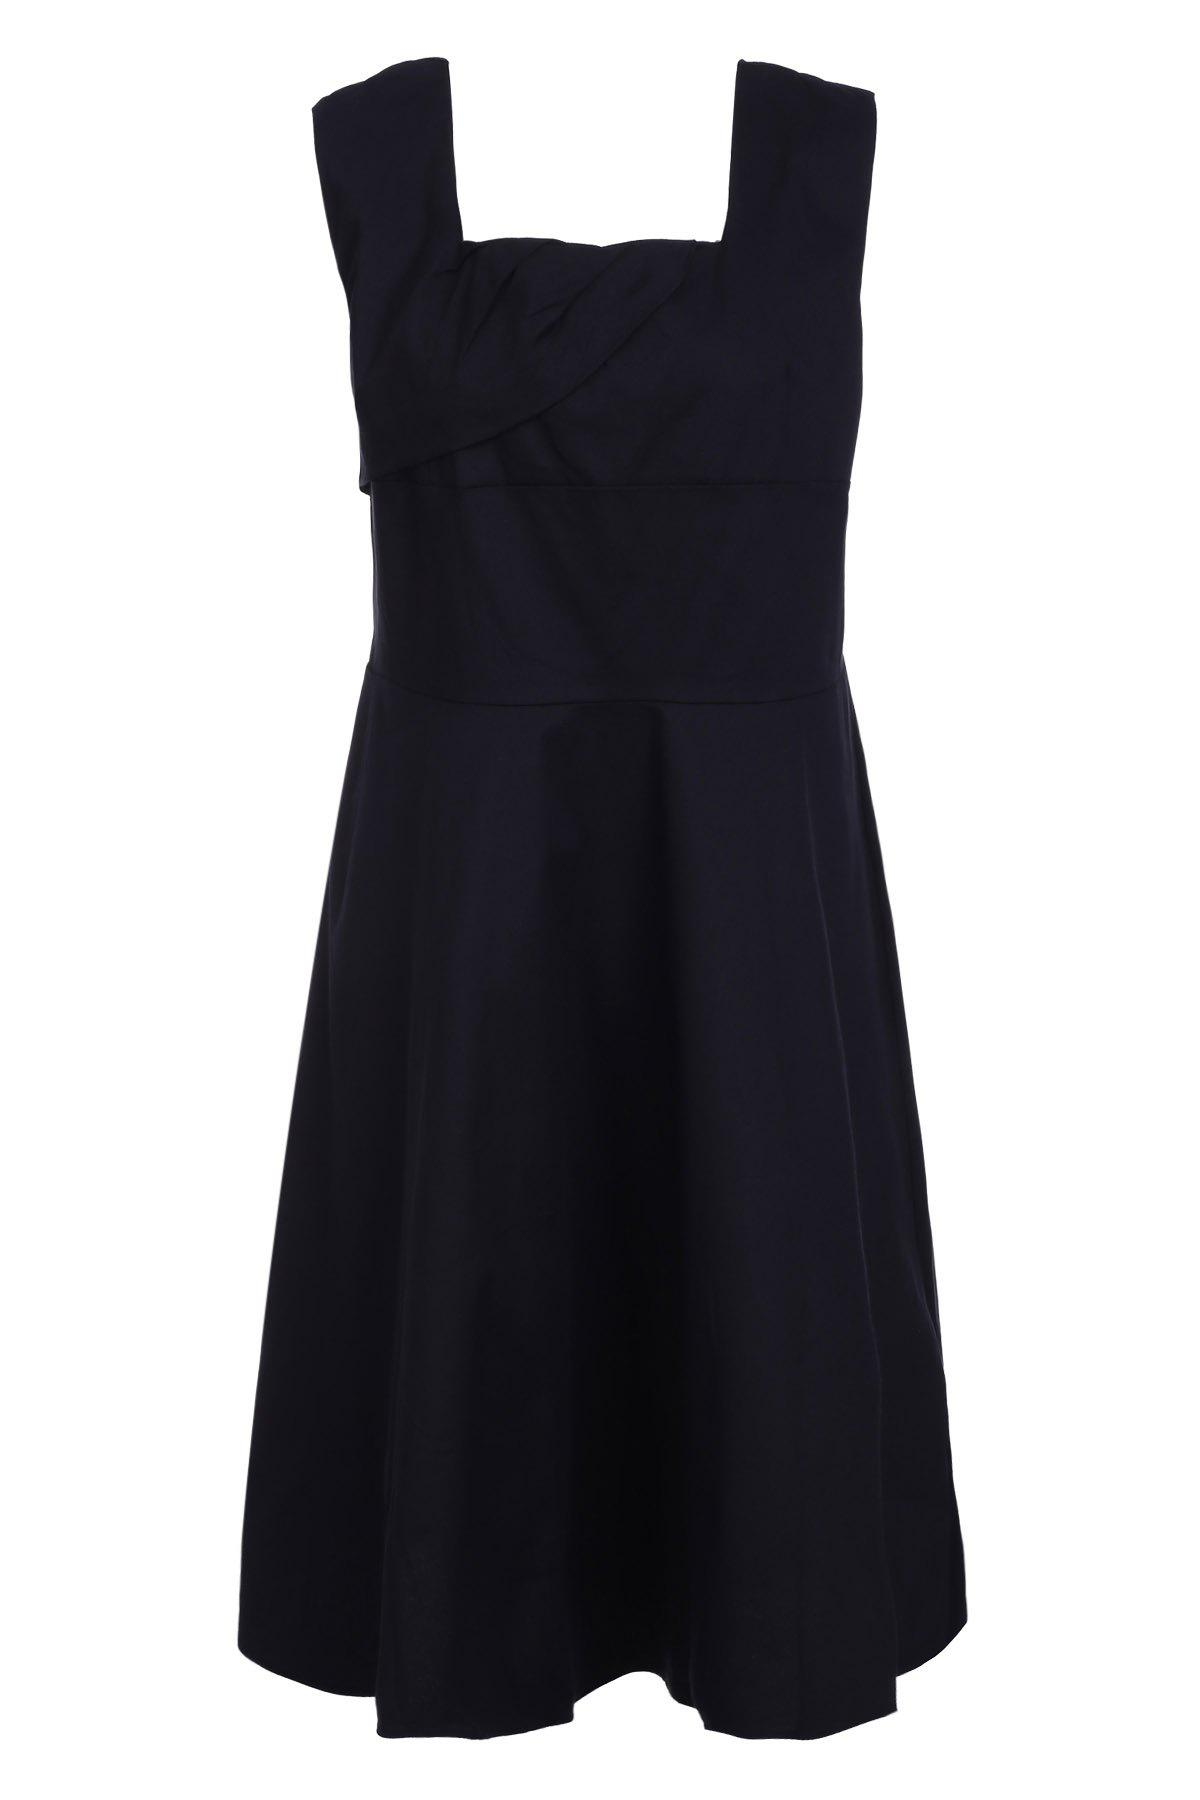 Retro Style Square Neck Sleeveless Solid Color Women's Ball Gown Dress - BLACK 3XL